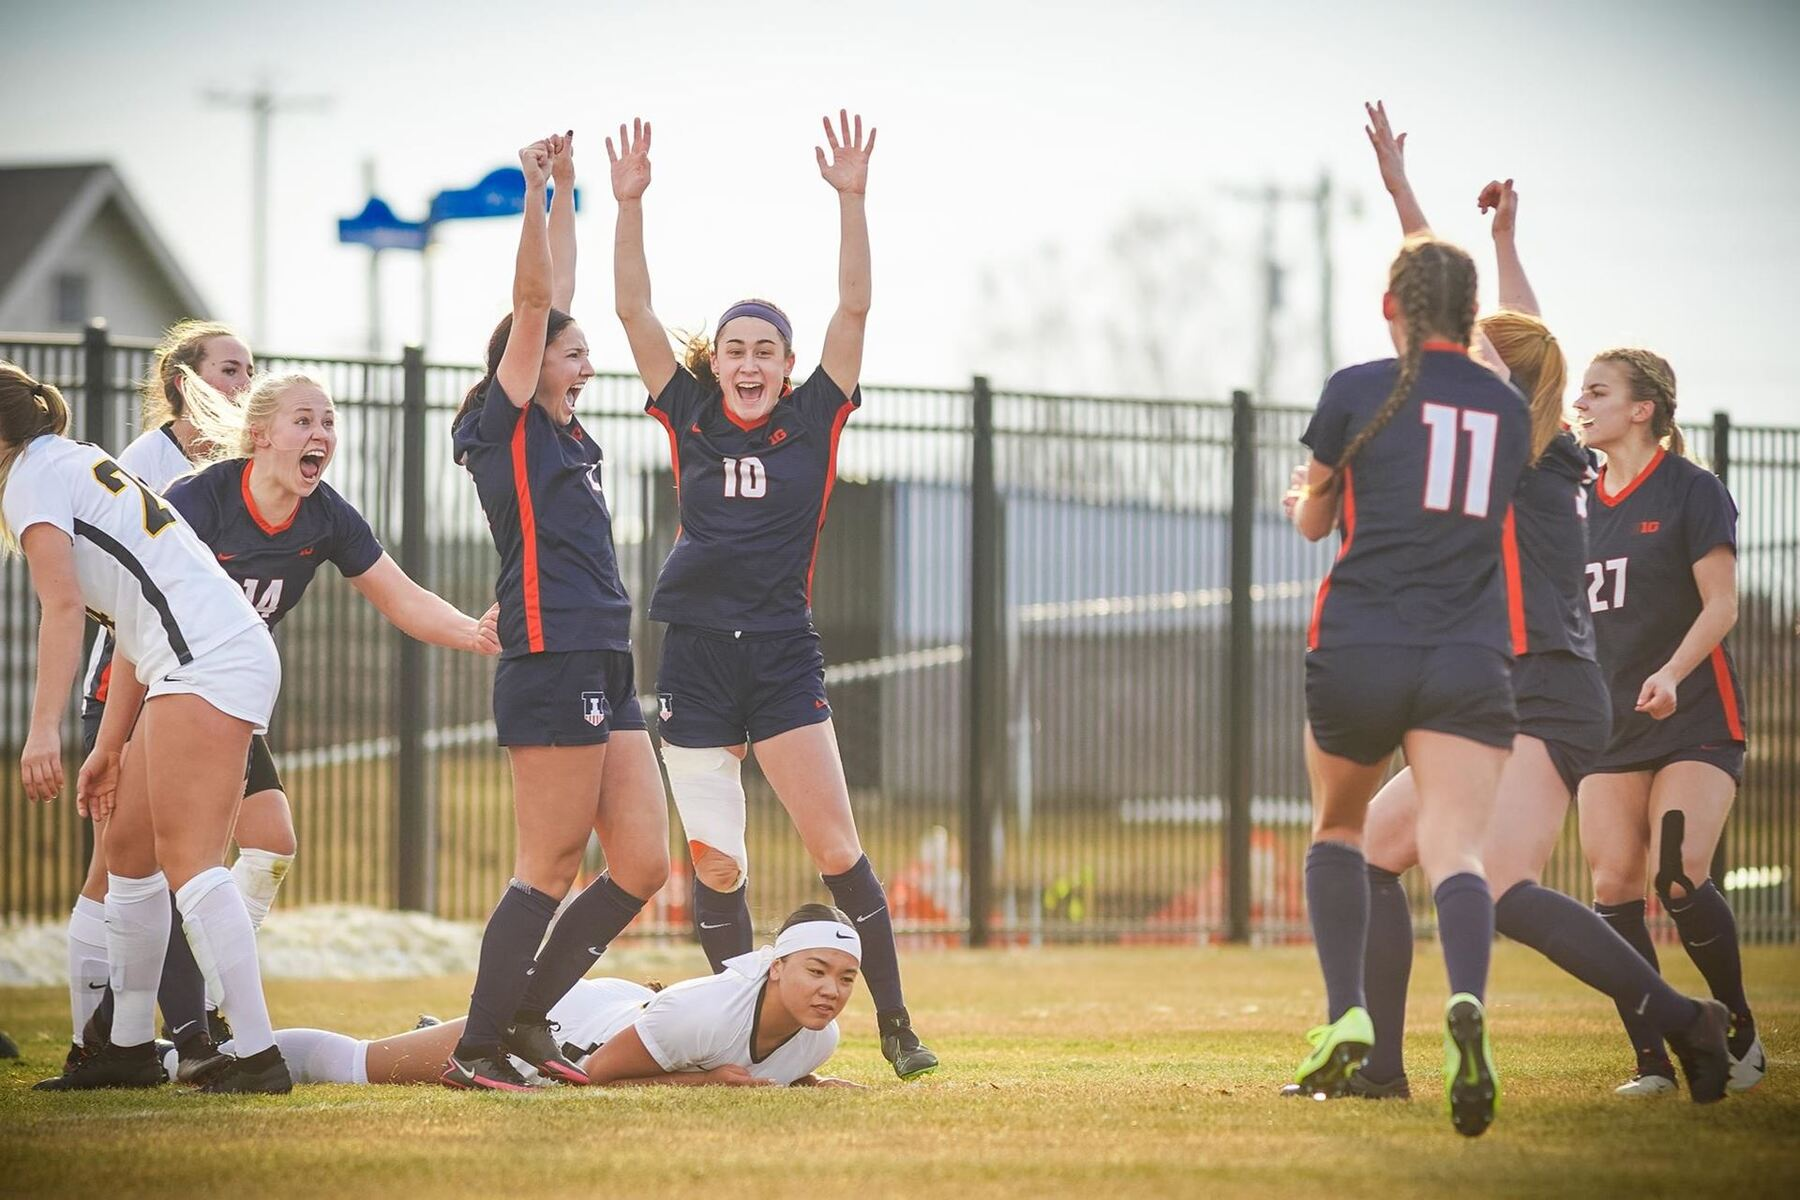 ecstatic Illini Soccer players run towards each other in celebration of a goal